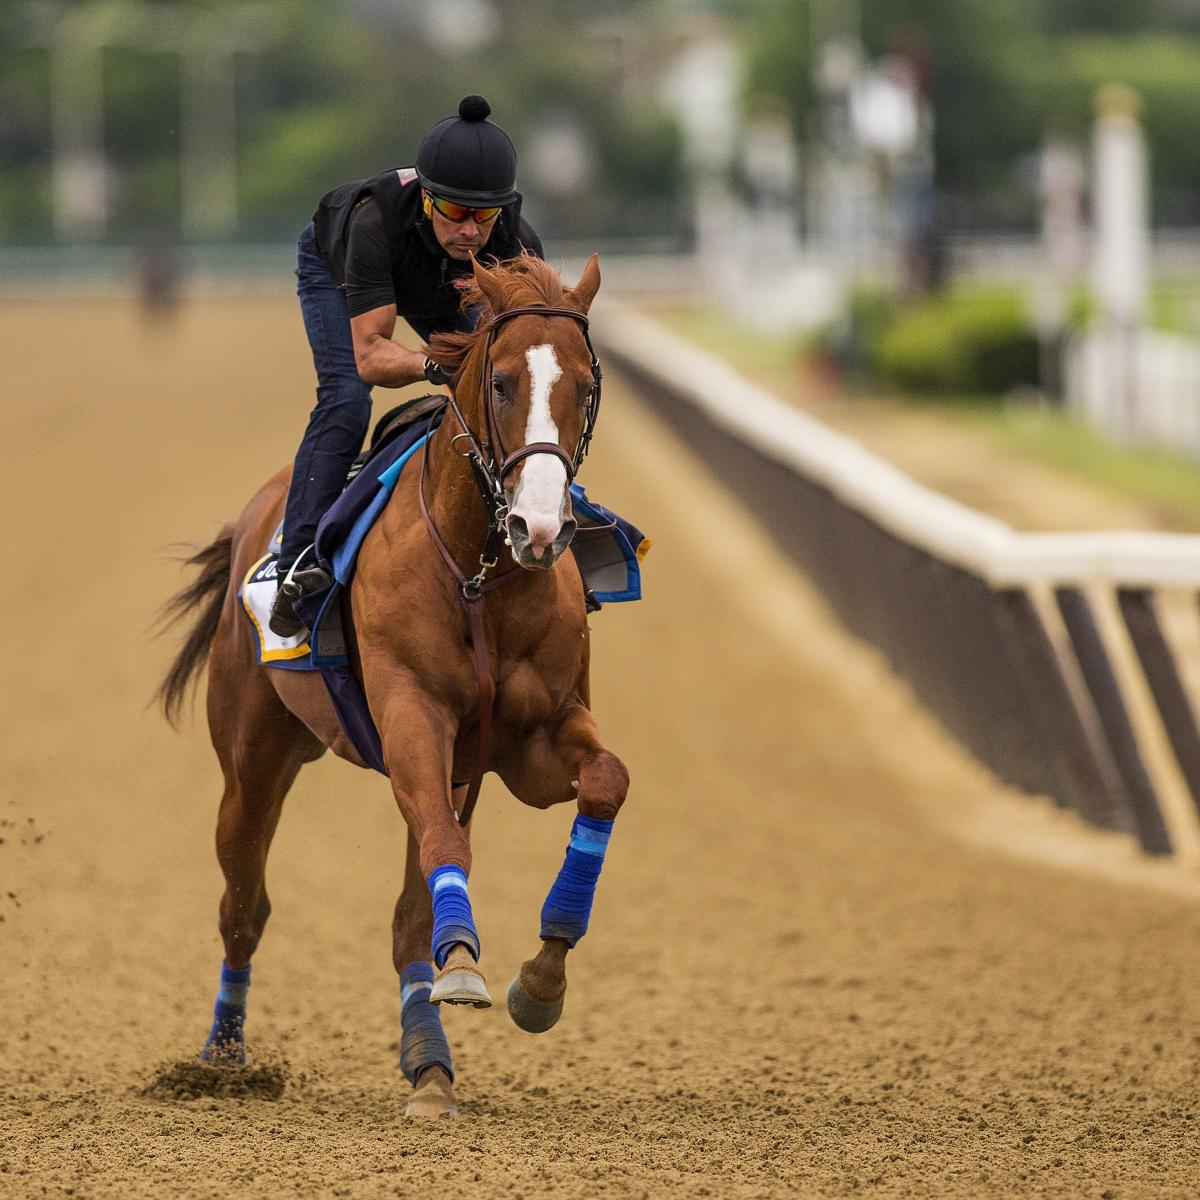 Belmont Stakes 2018: Projected Prize Money Earnings, Order of Finish and More